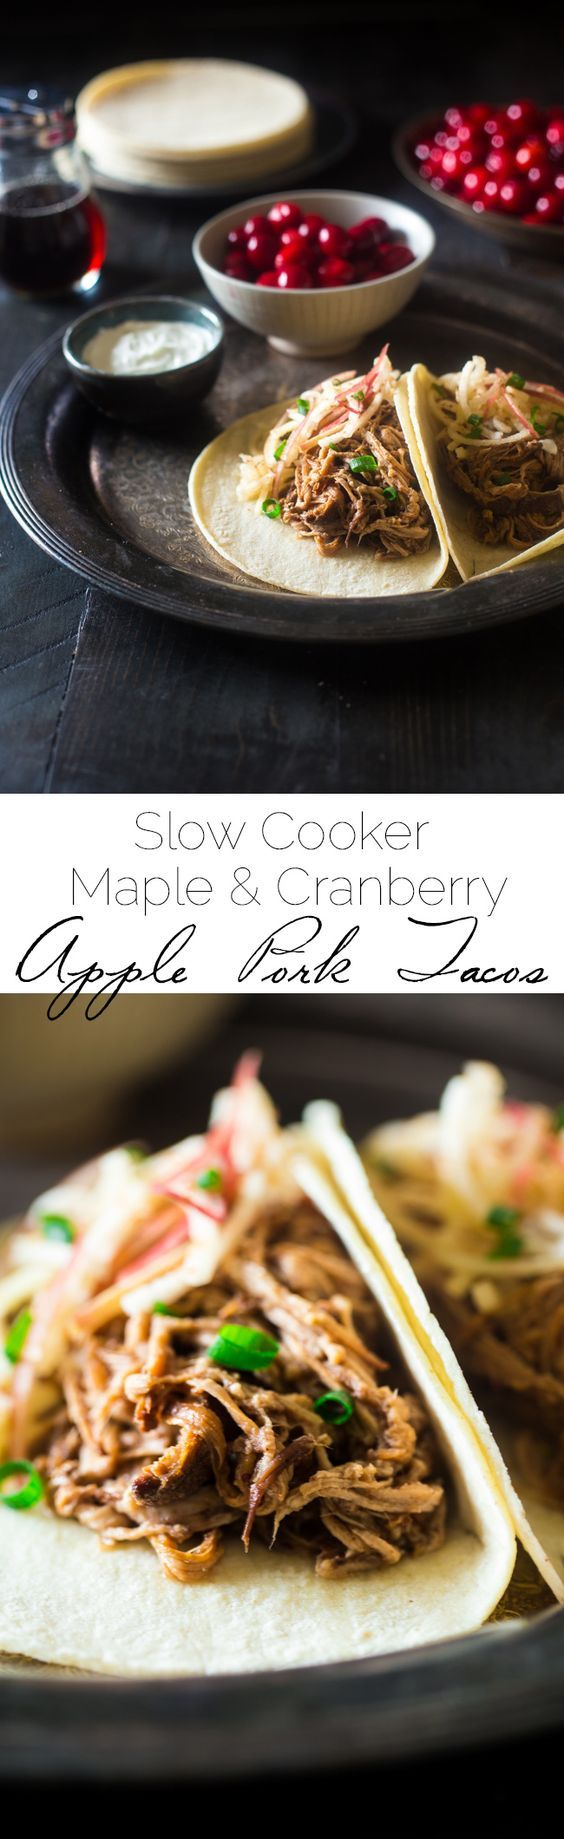 Gluten Free Cranberry Apple Chipotle Slow Cooker Pork Tenderloin Tacos - These healthy tacos are packed with spicy-sweet fall flavor and are an easy weeknight meal that the whole family will love! | |